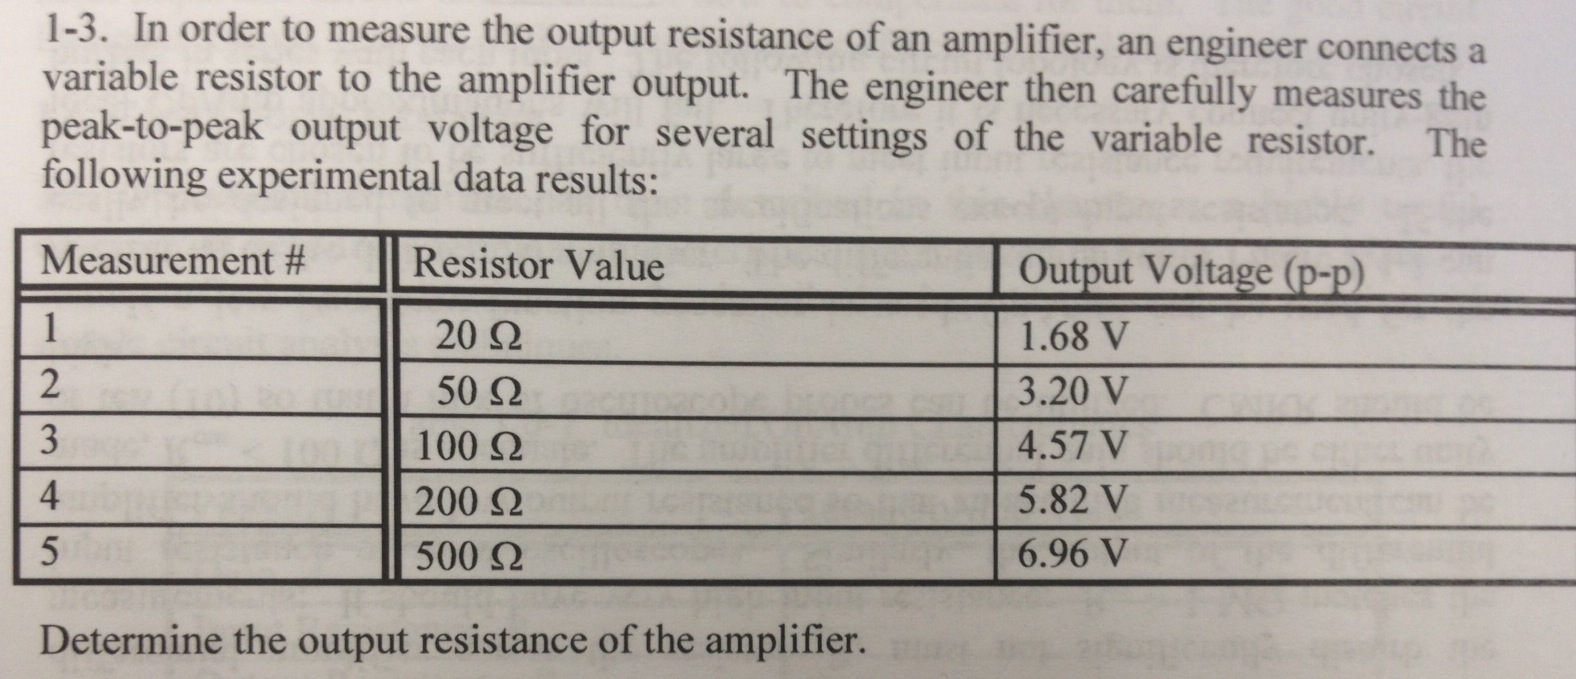 In order to measure the output resistance of an am